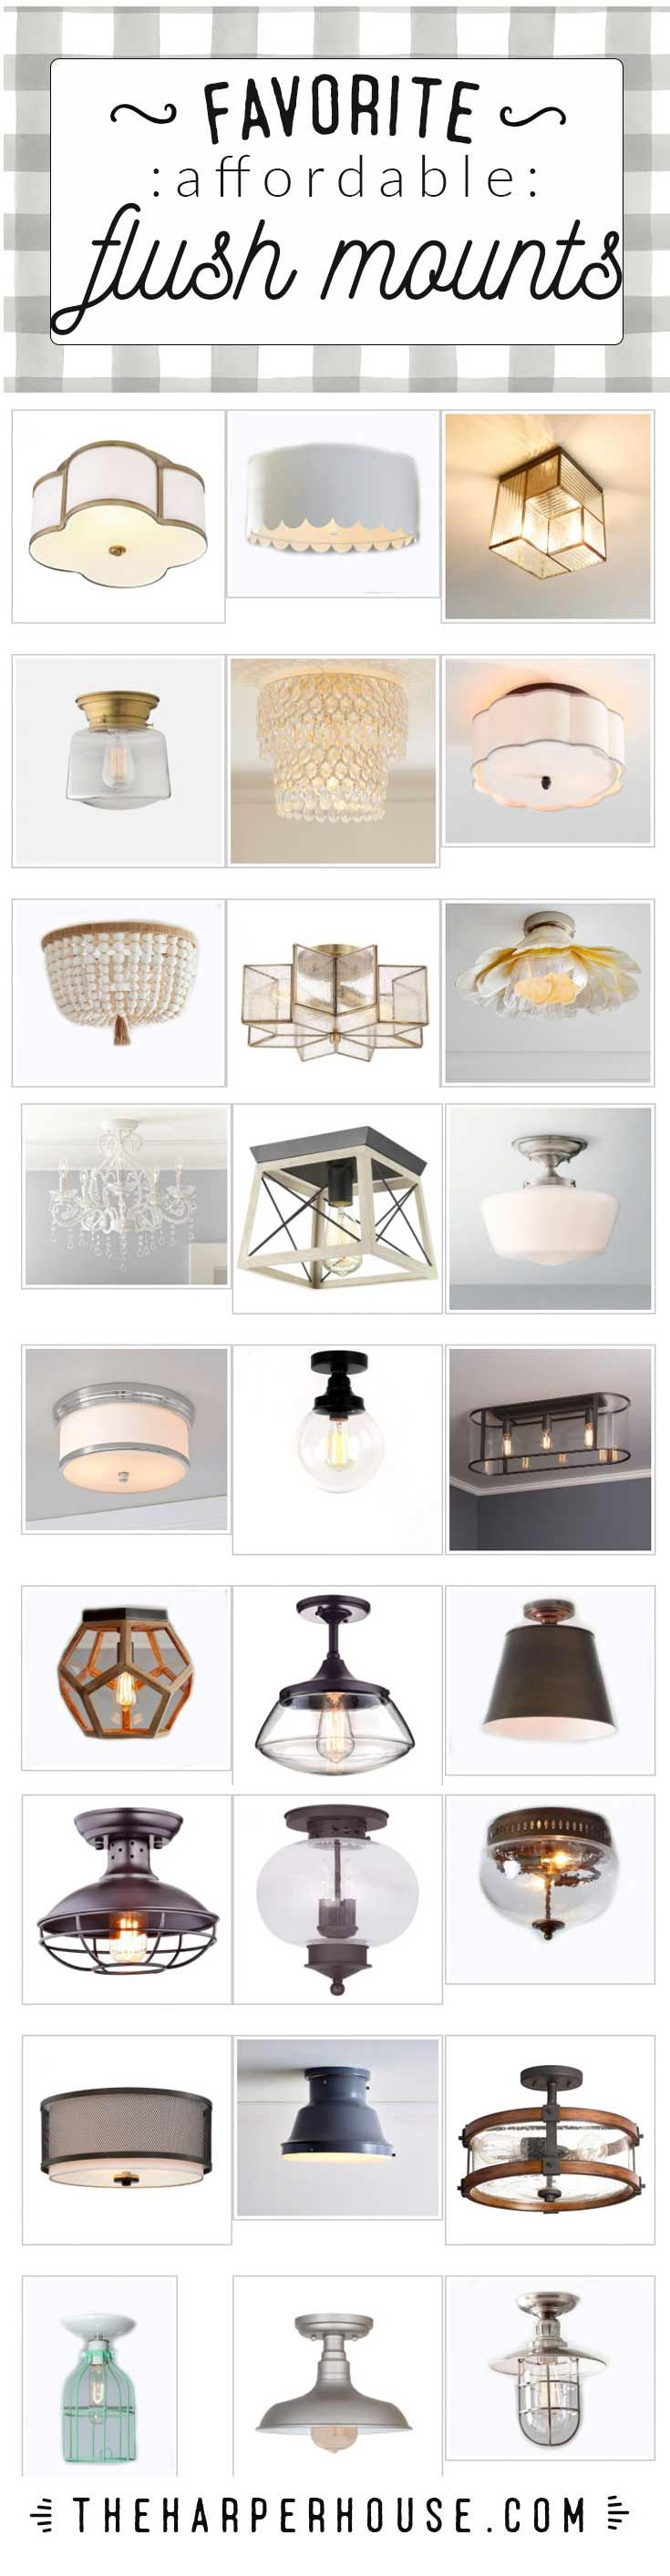 Fresh farmhouse style flush mounts & semi flush mount lighting ideas for 2017. Full resource list and shopping links on the blog. Give your home some Fixer Upper style with these affordable flush mounts. #fixerupper #modernfarmhouse #lightfixtures